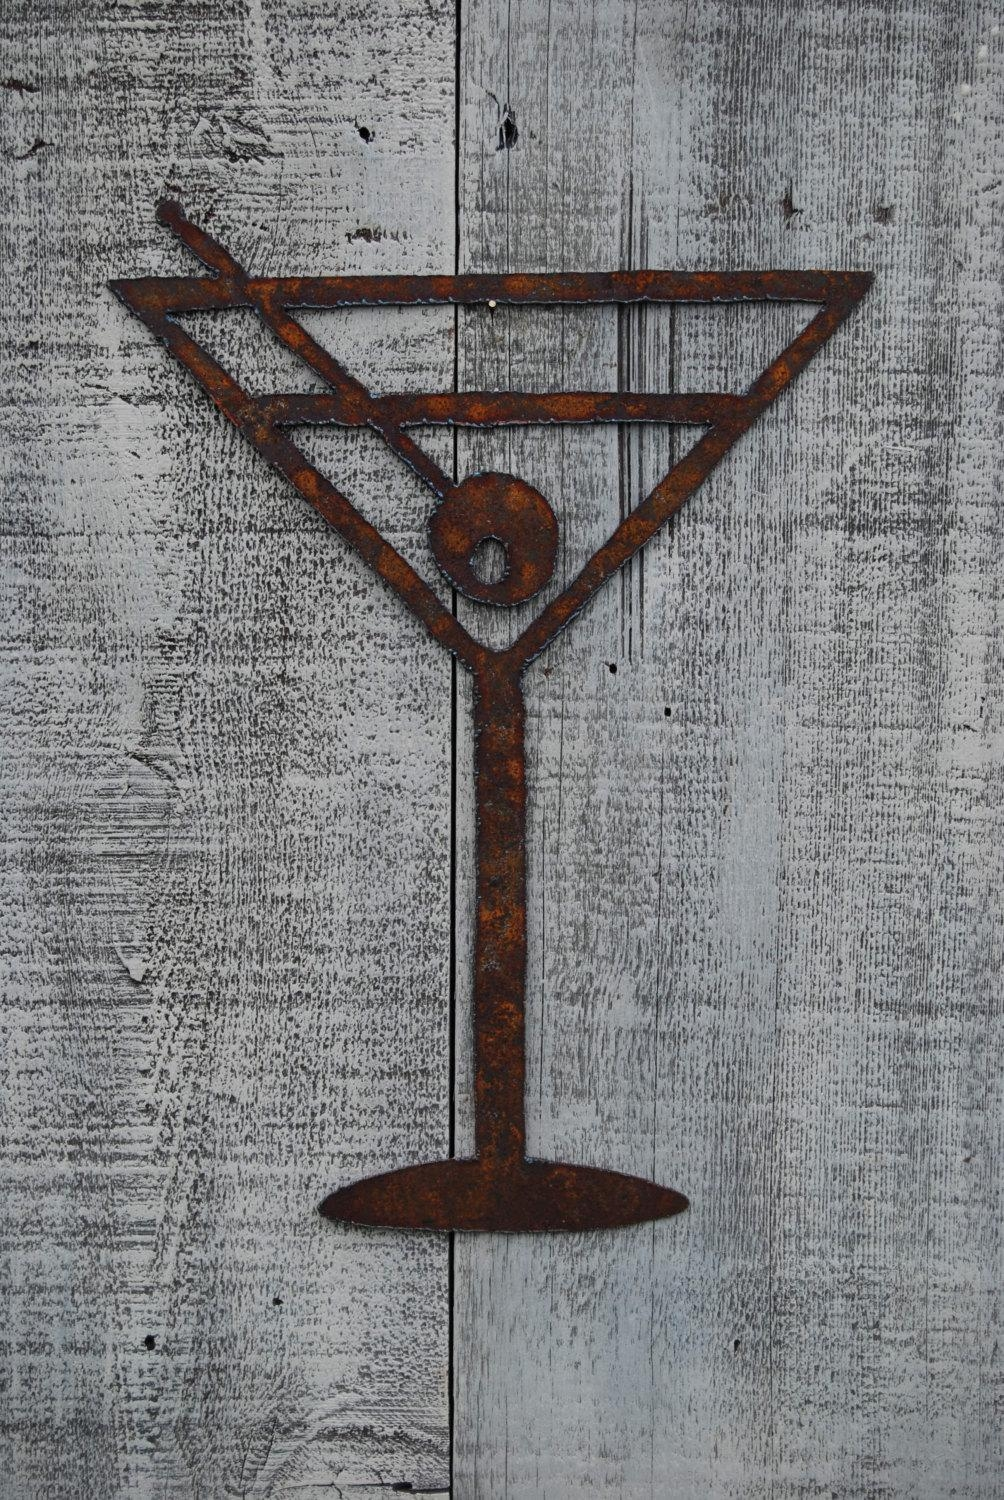 Cheers Martini Glass Metal Art Wall Hanging Bar Decor Intended For Martini Glass Wall Art (View 6 of 20)